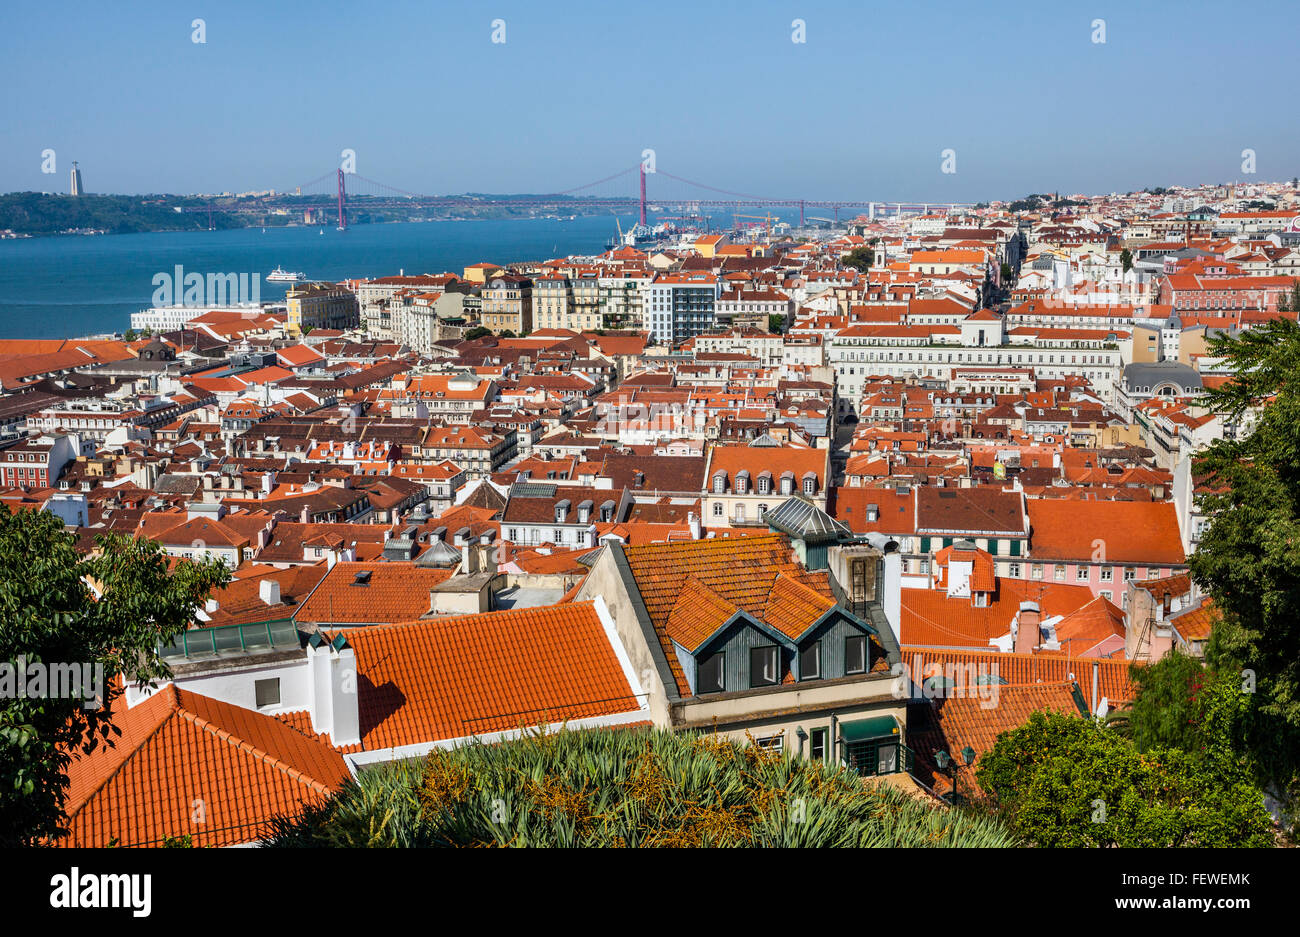 Portugal, Lisbon, view from Castelo de Sao Jorge of Baixa Pombaline, the Pombaline Downtown of Lisbon - Stock Image